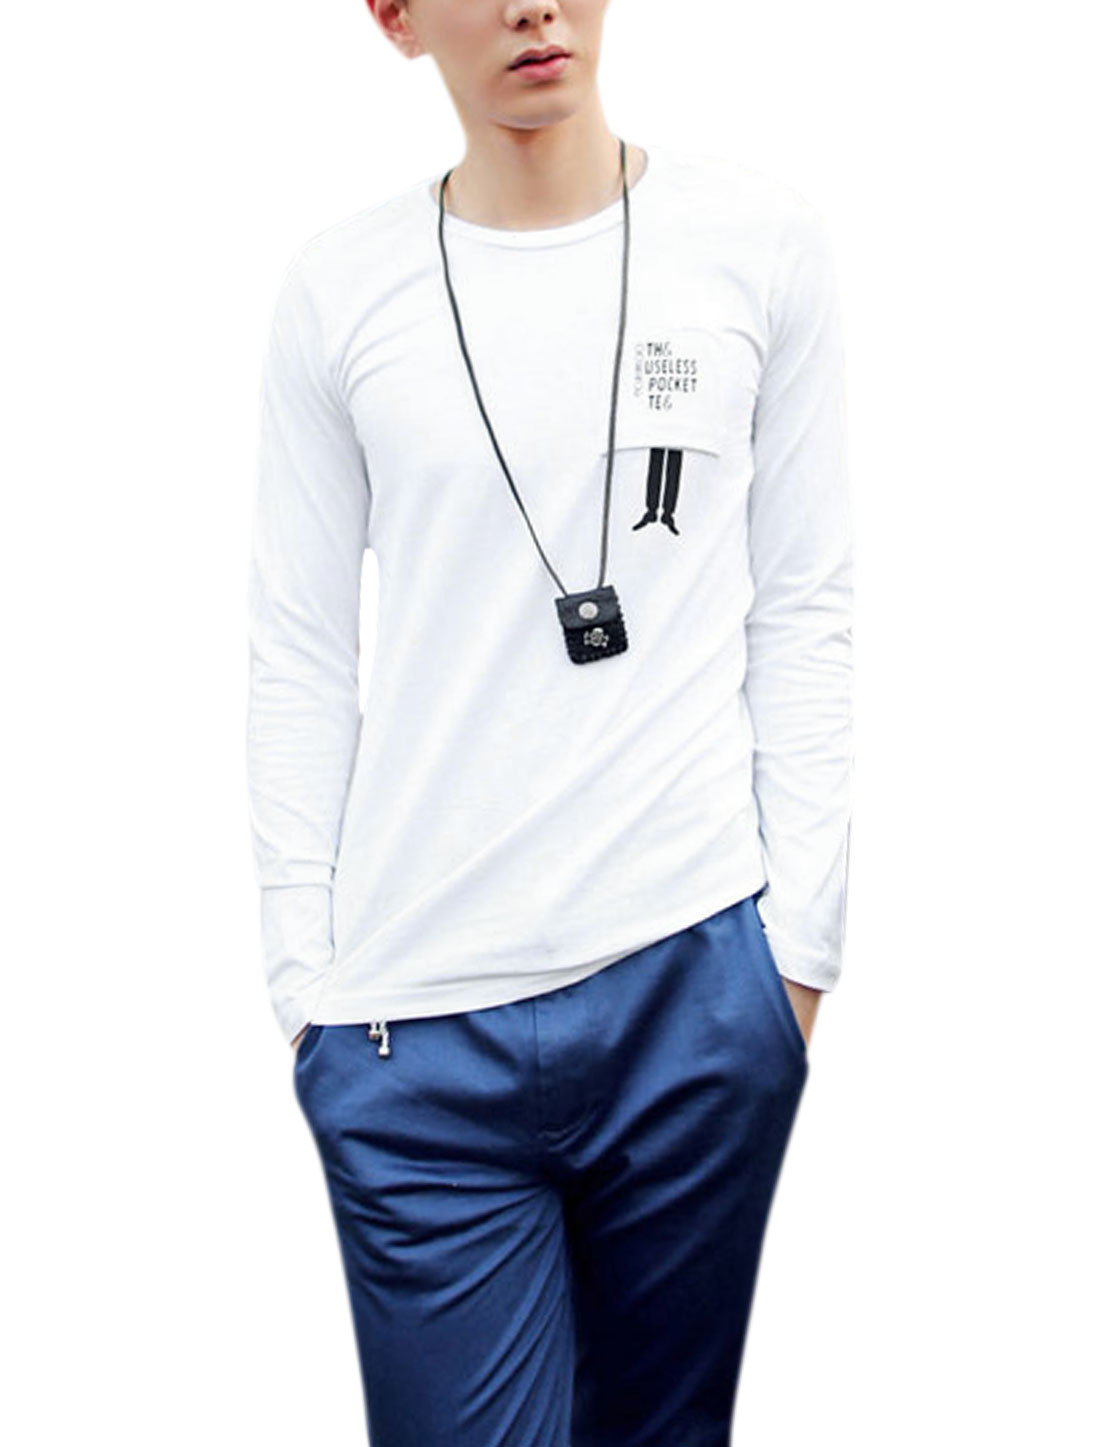 Men Round Neck Letters Detail Fashionable Casual Shirt White M